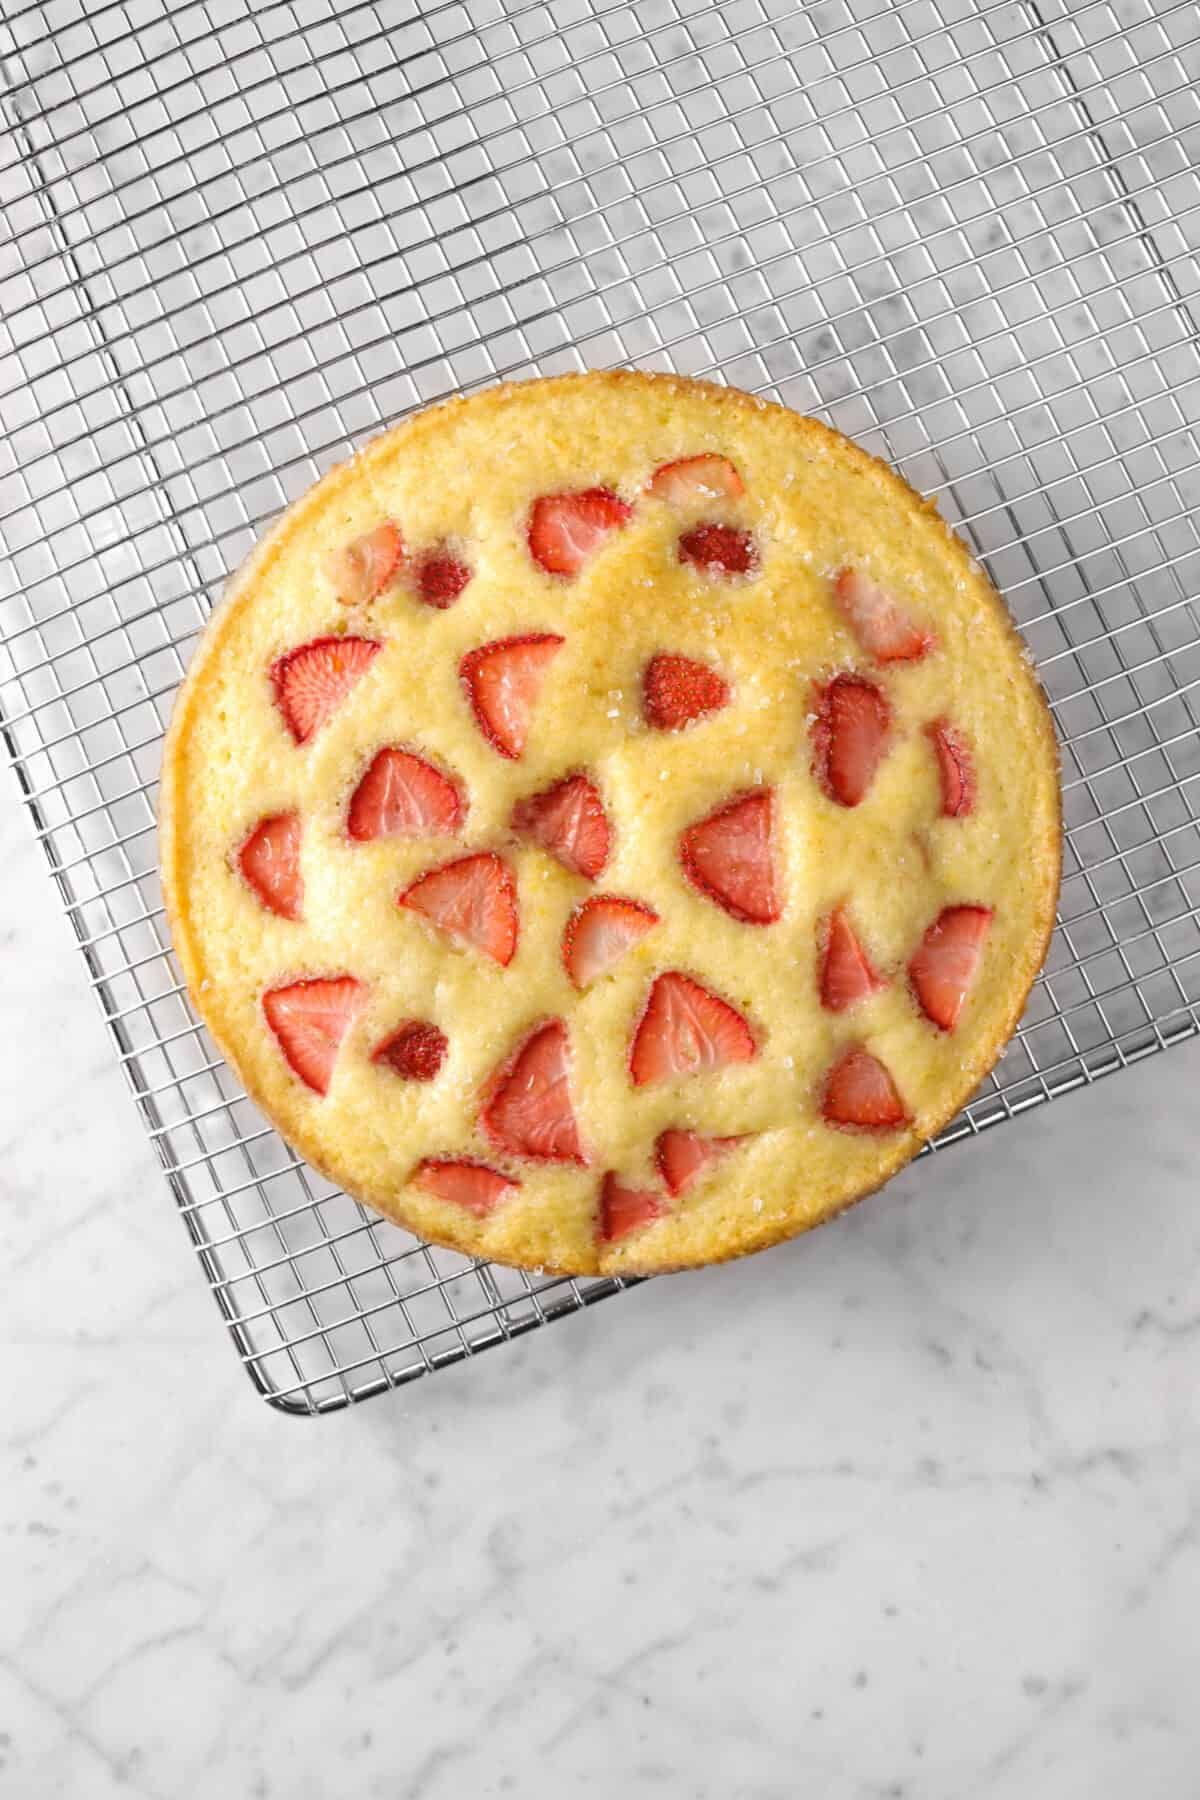 strawberry snack cake on a wire cooling rack